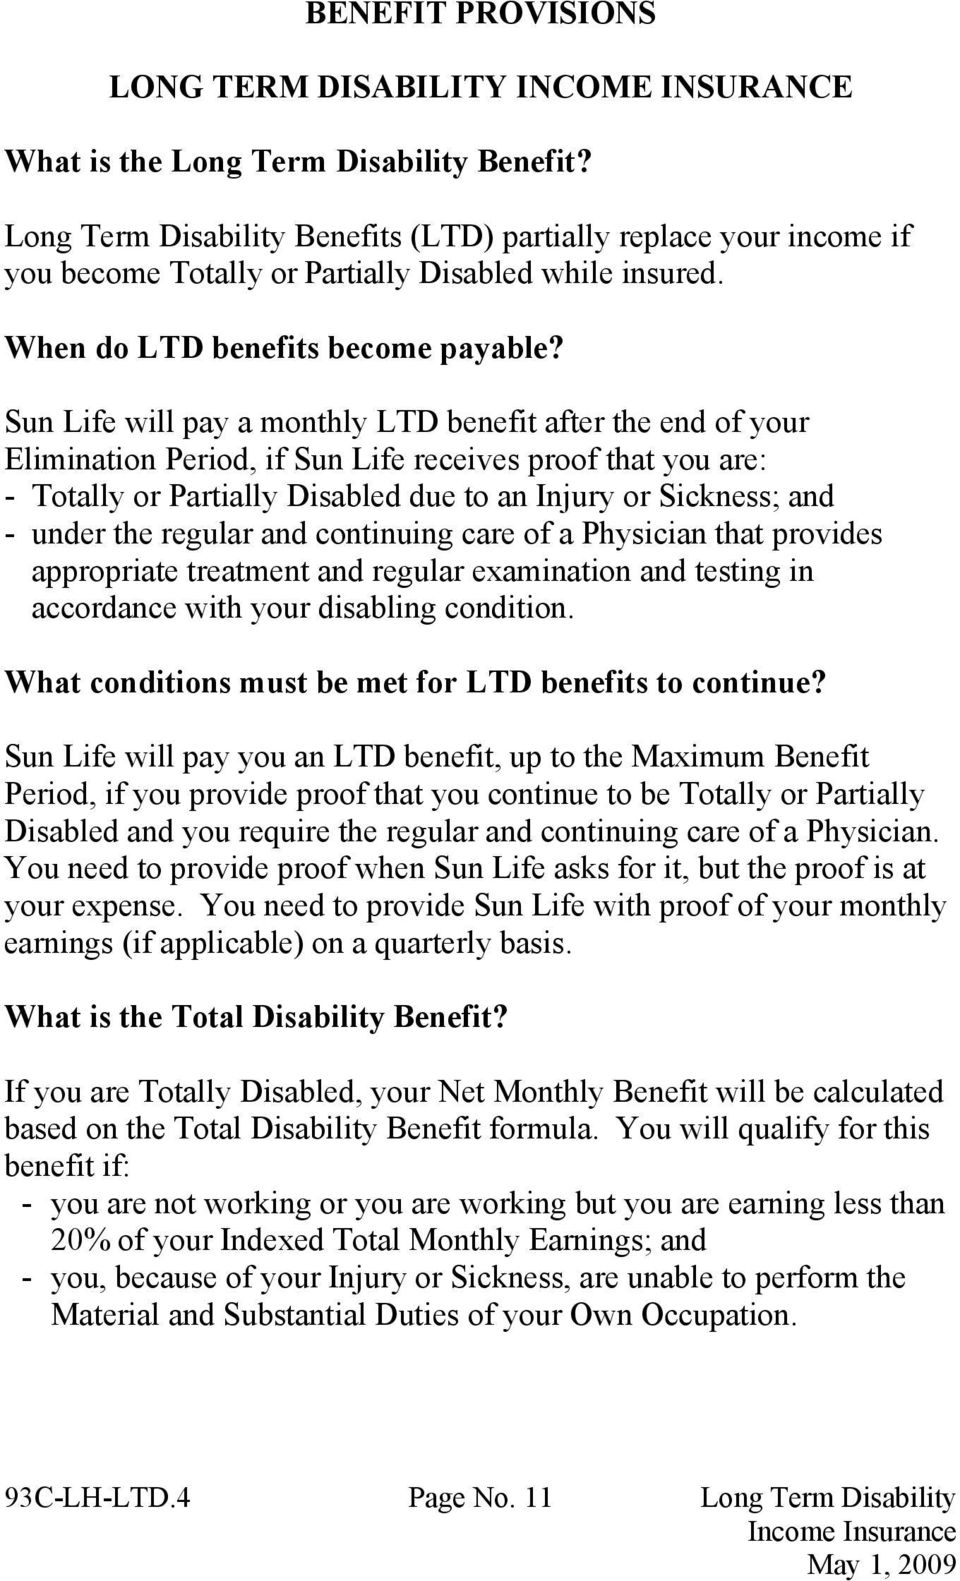 Sun Life will pay a monthly LTD benefit after the end of your Elimination Period, if Sun Life receives proof that you are: - Totally or Partially Disabled due to an Injury or Sickness; and - under